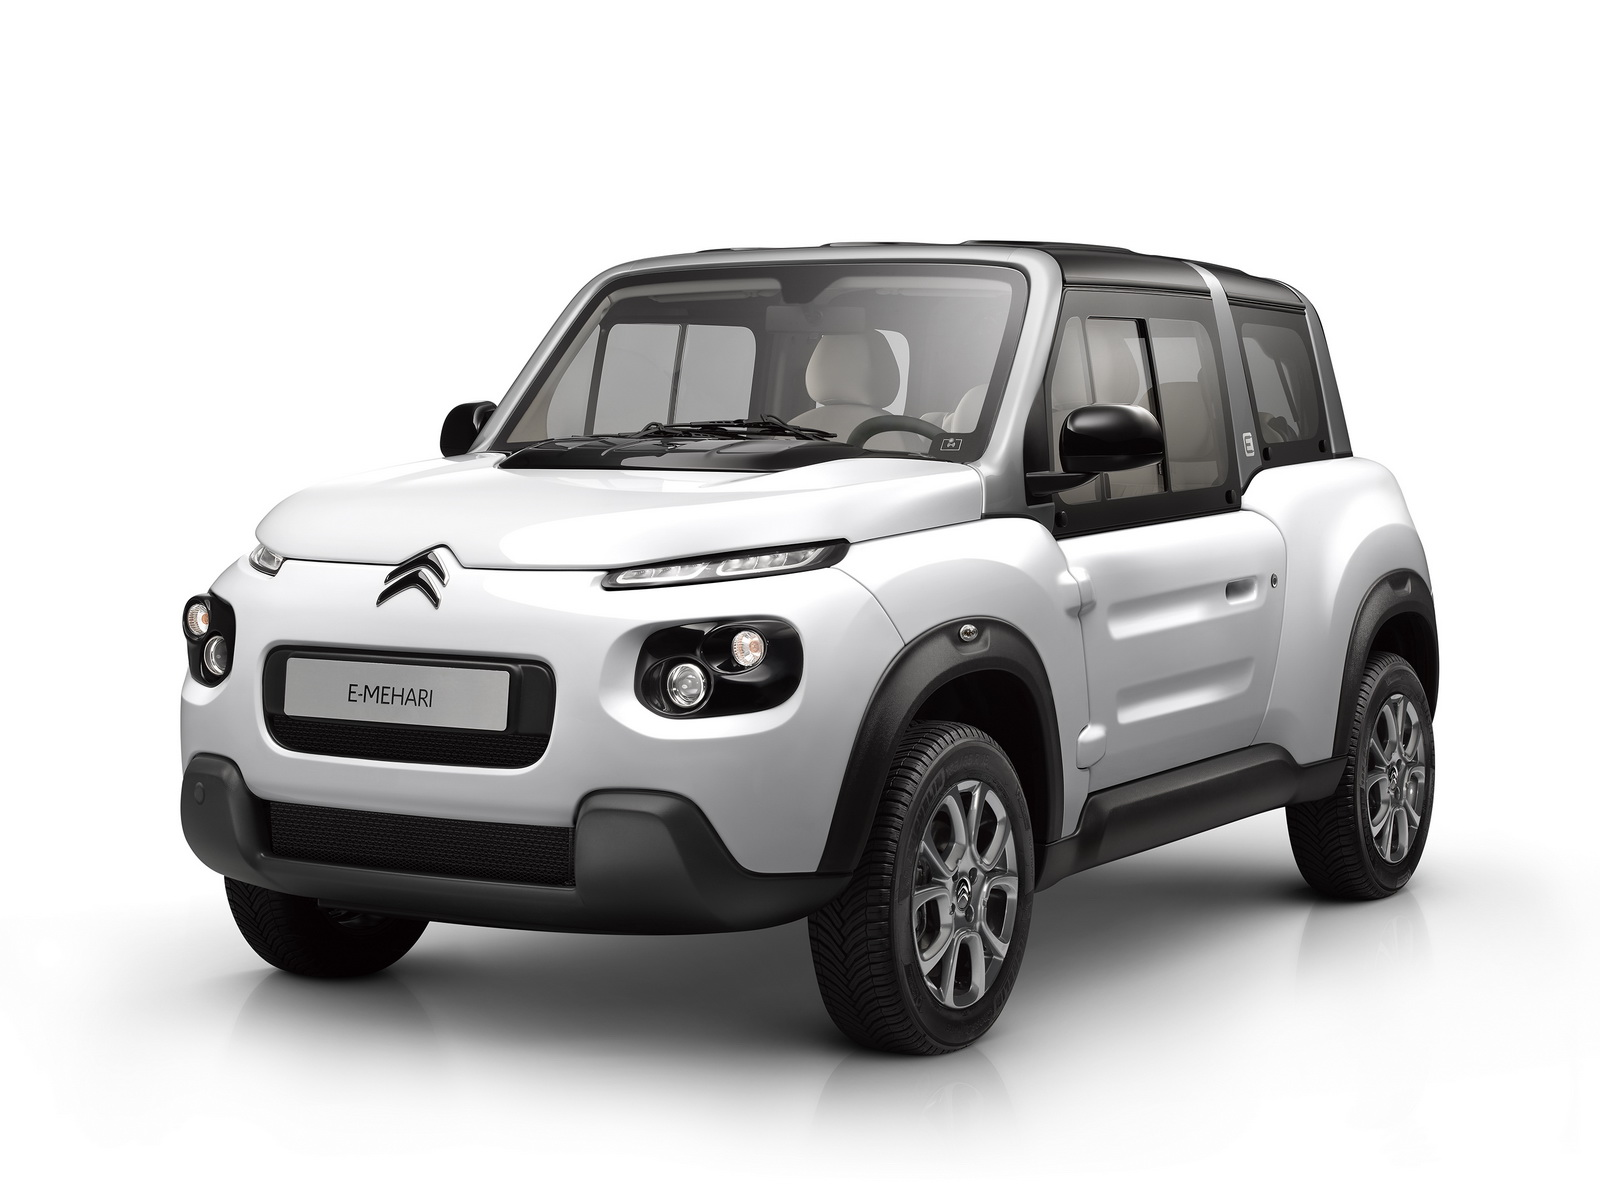 Electric Citroen E Mehari Becomes More Practical With New